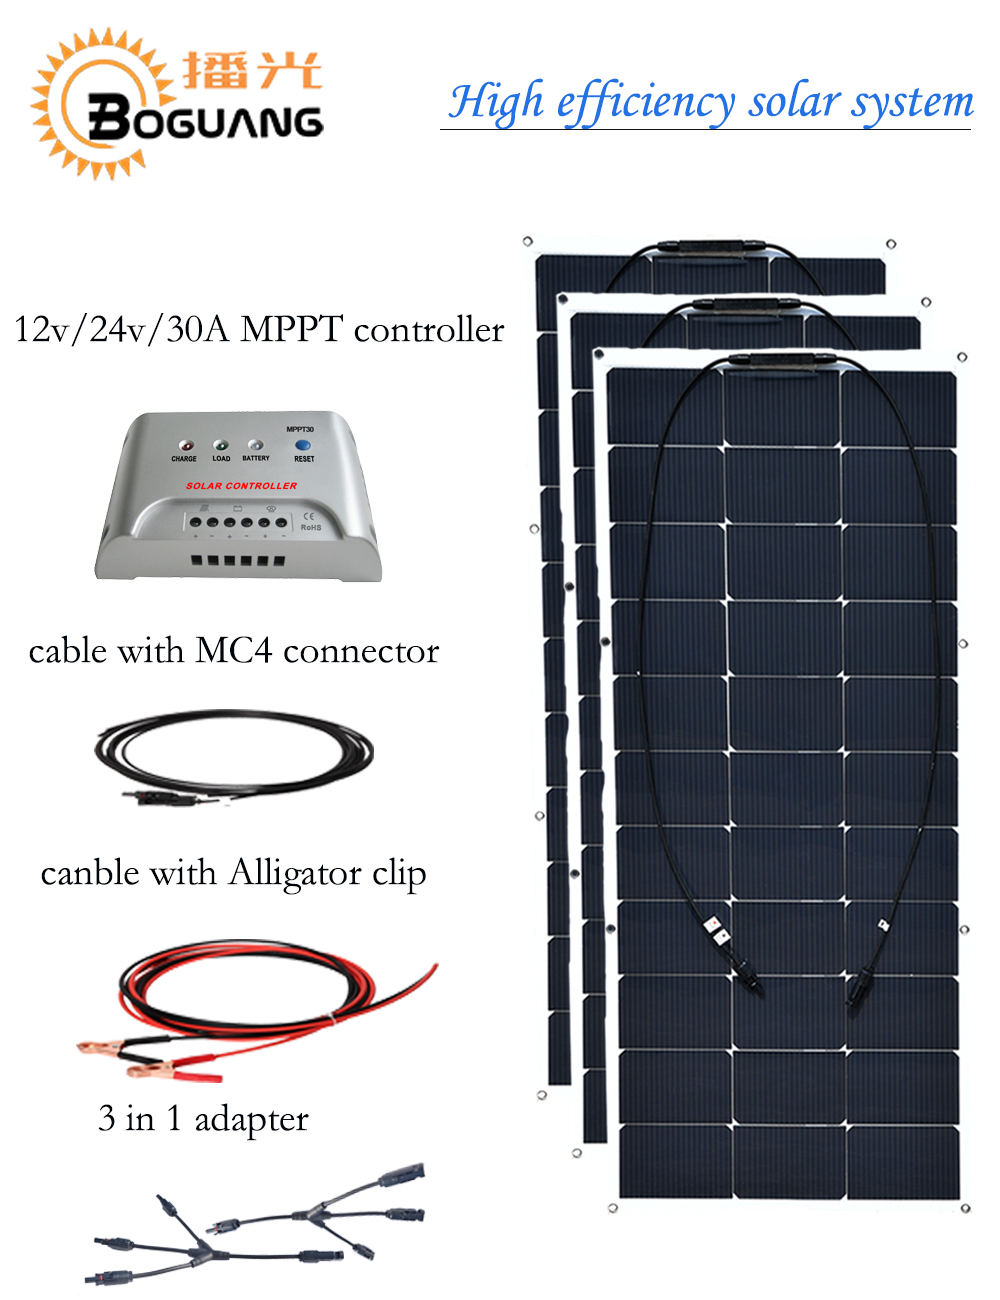 Boguang 300w semi flexible solar panel 30A MPPT controller cable Alligator clip cell 3 in 1 adapter MC4 connector 12v 24v 3*100w